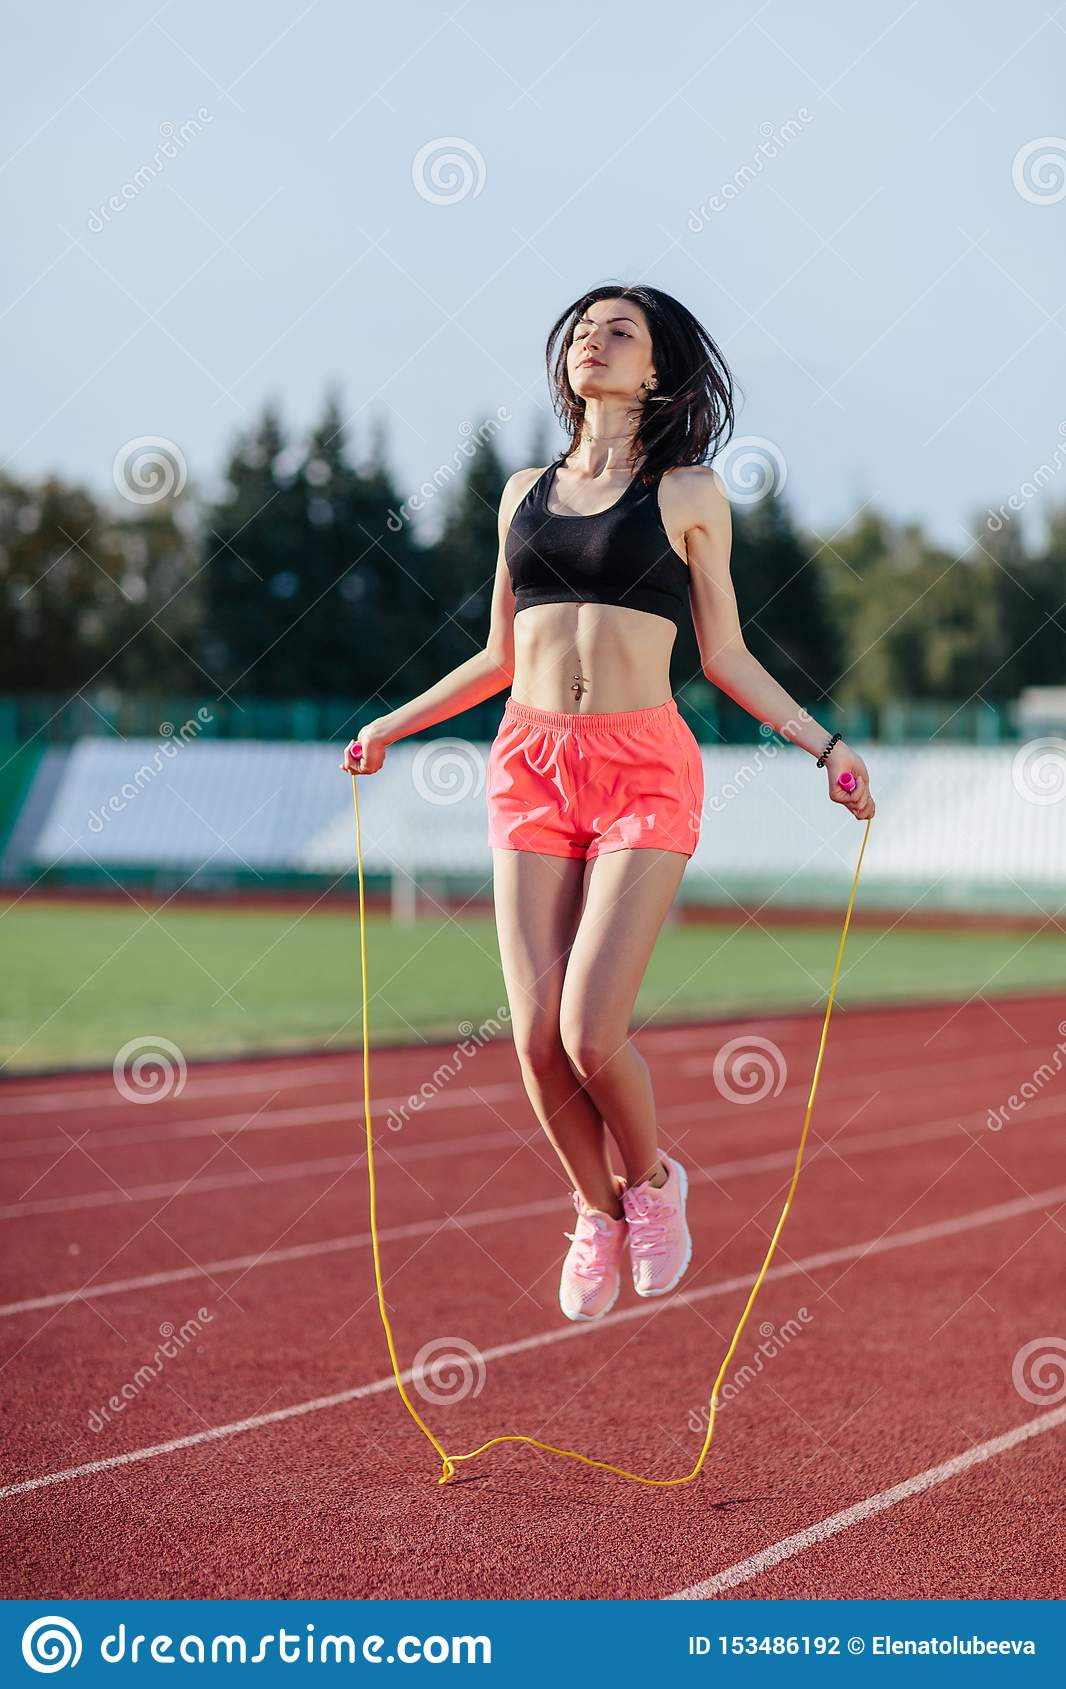 Achieving best results. Beautiful young brunette woman in sports clothing skipping rope and smiling while exercising on the